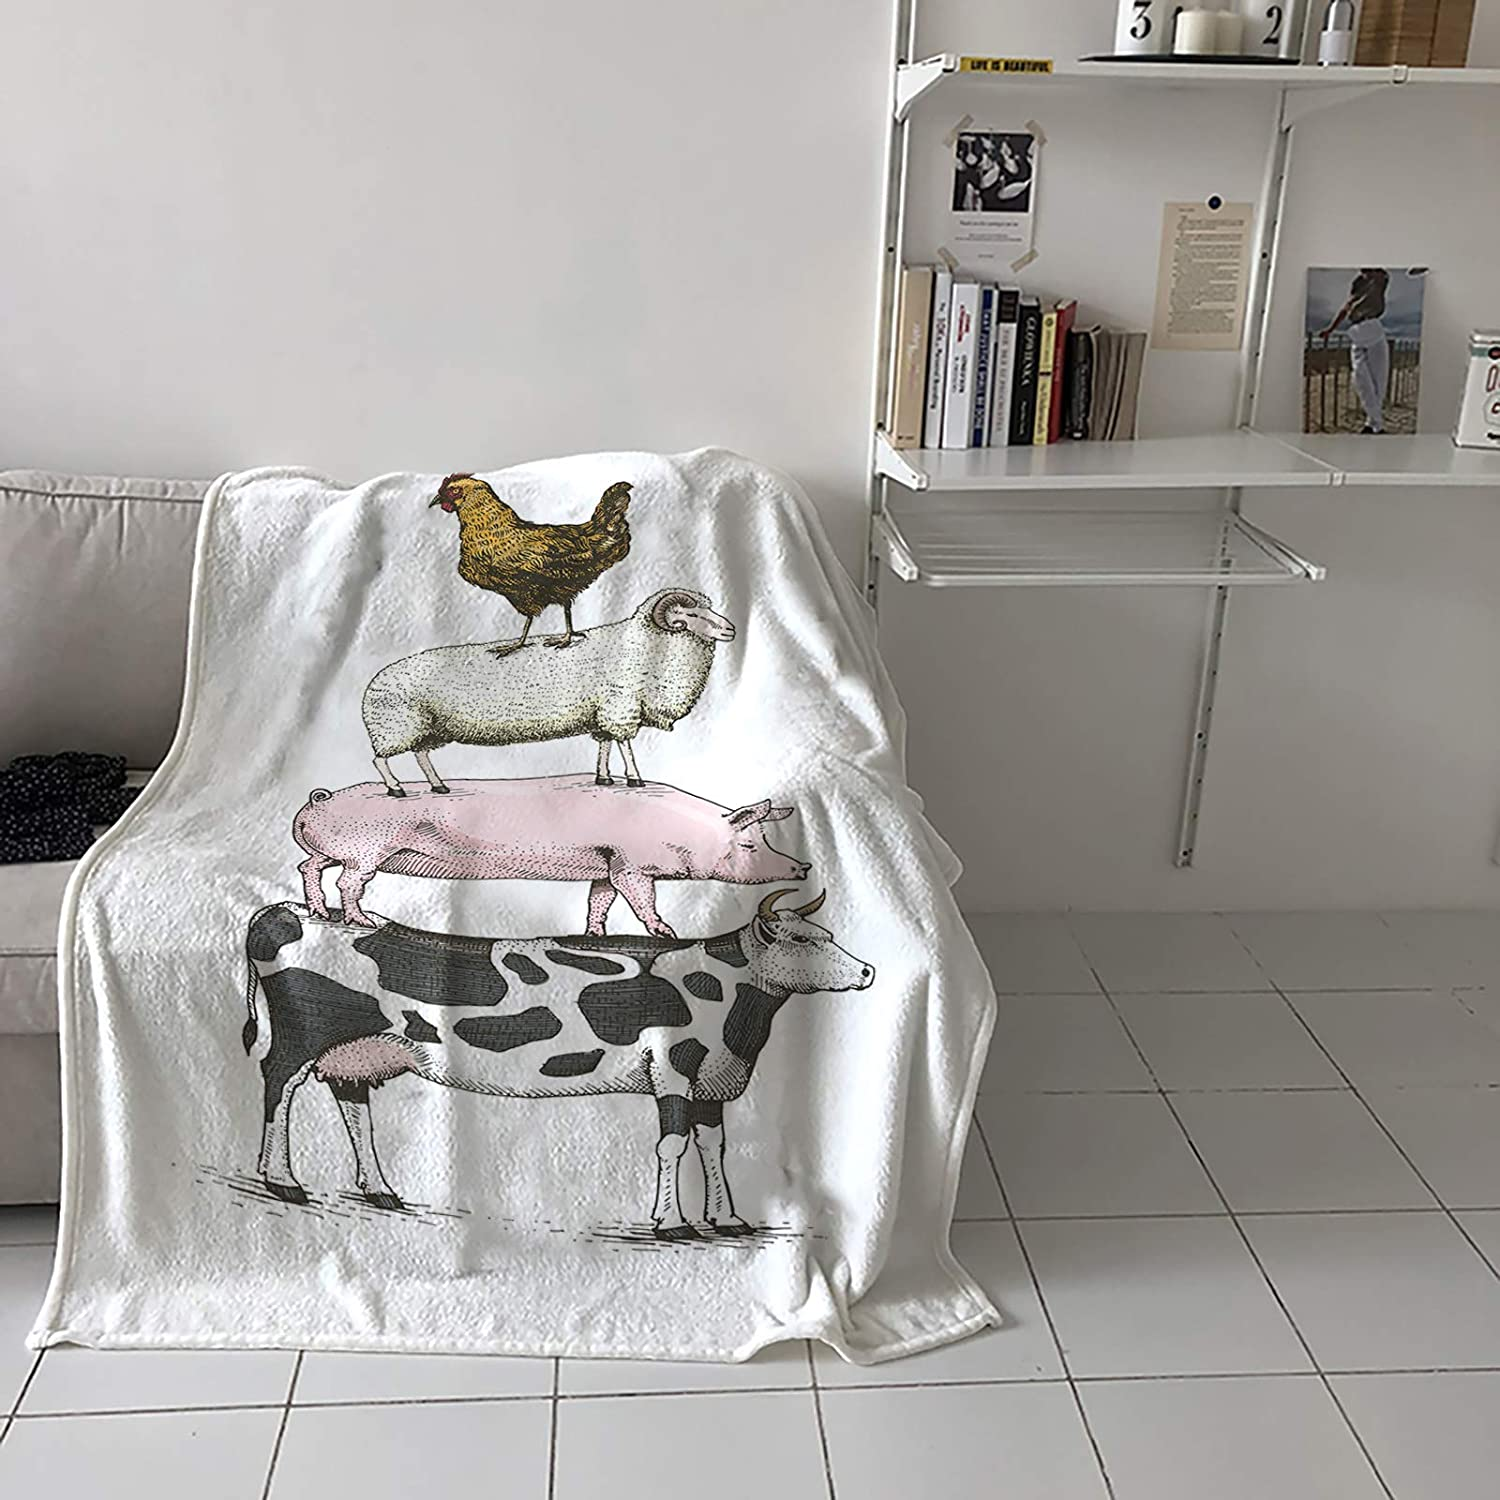 Limited time trial price Advancey Max 55% OFF Super Soft Blankets and Throws Farm Lam Pig Cow Animals